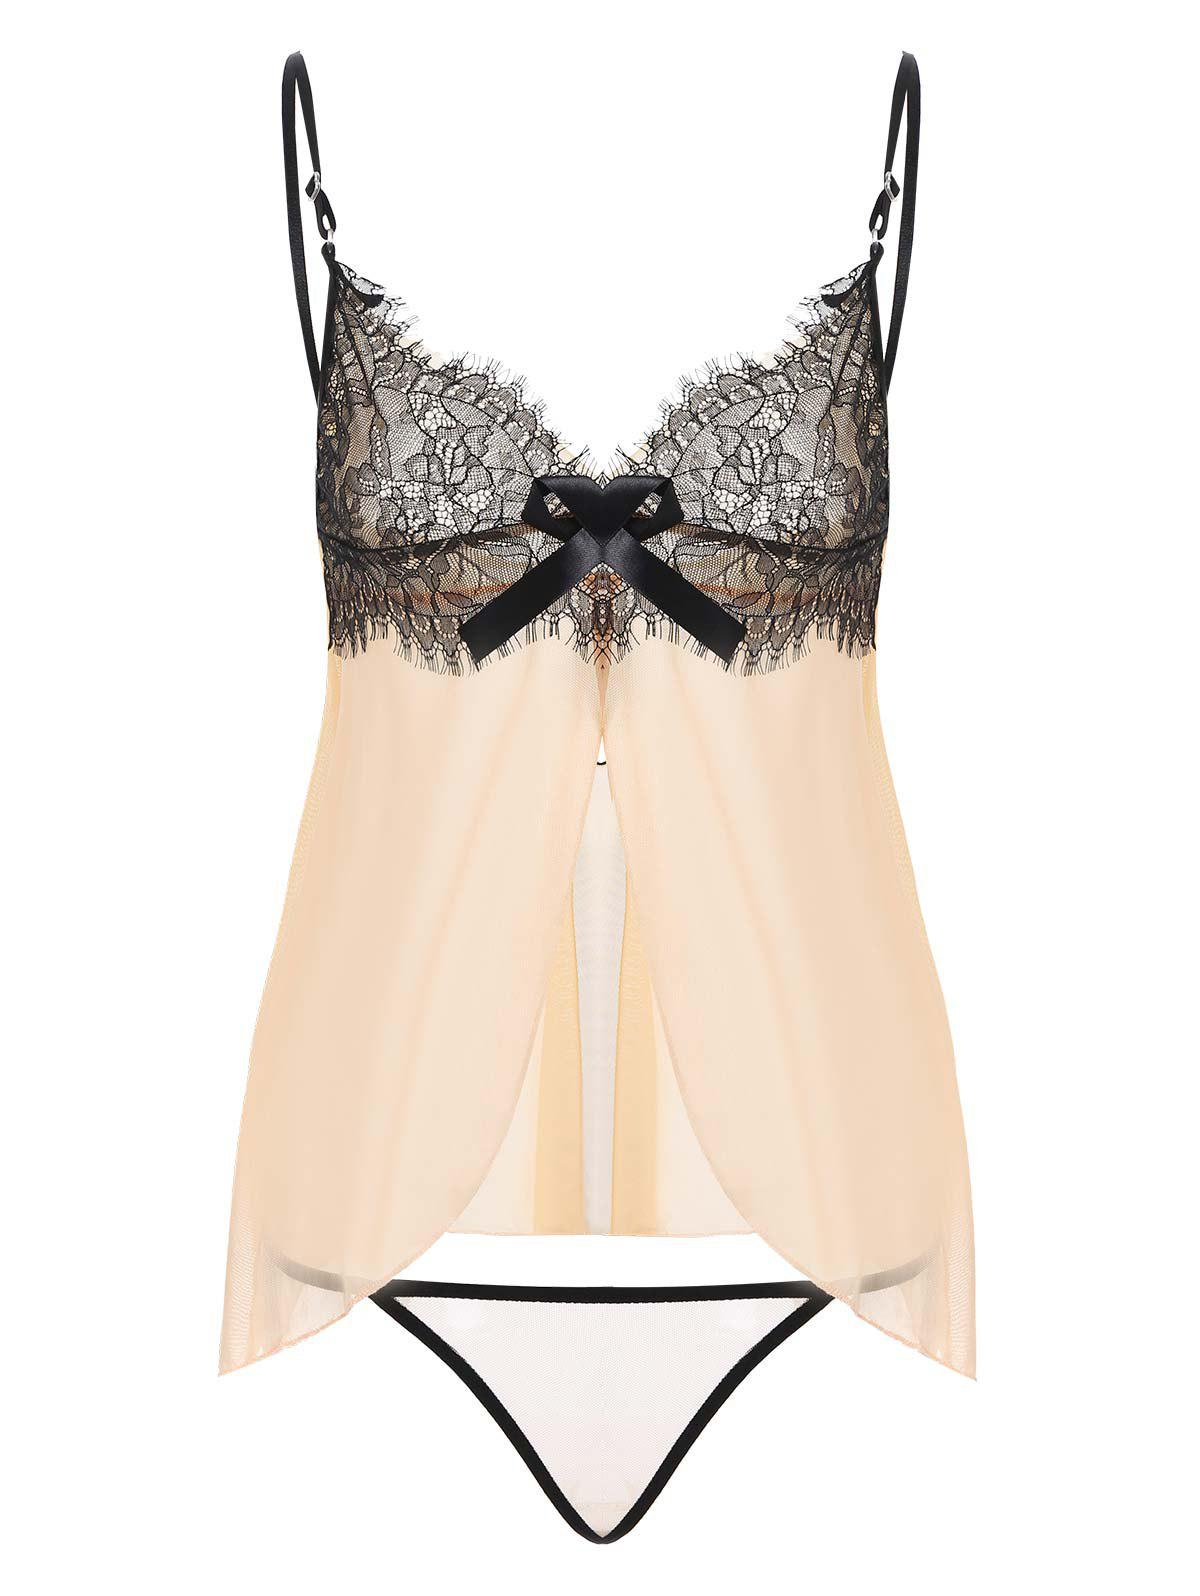 Lace Insert Sheer Slit Lingerie Camisole - COMPLEXION M